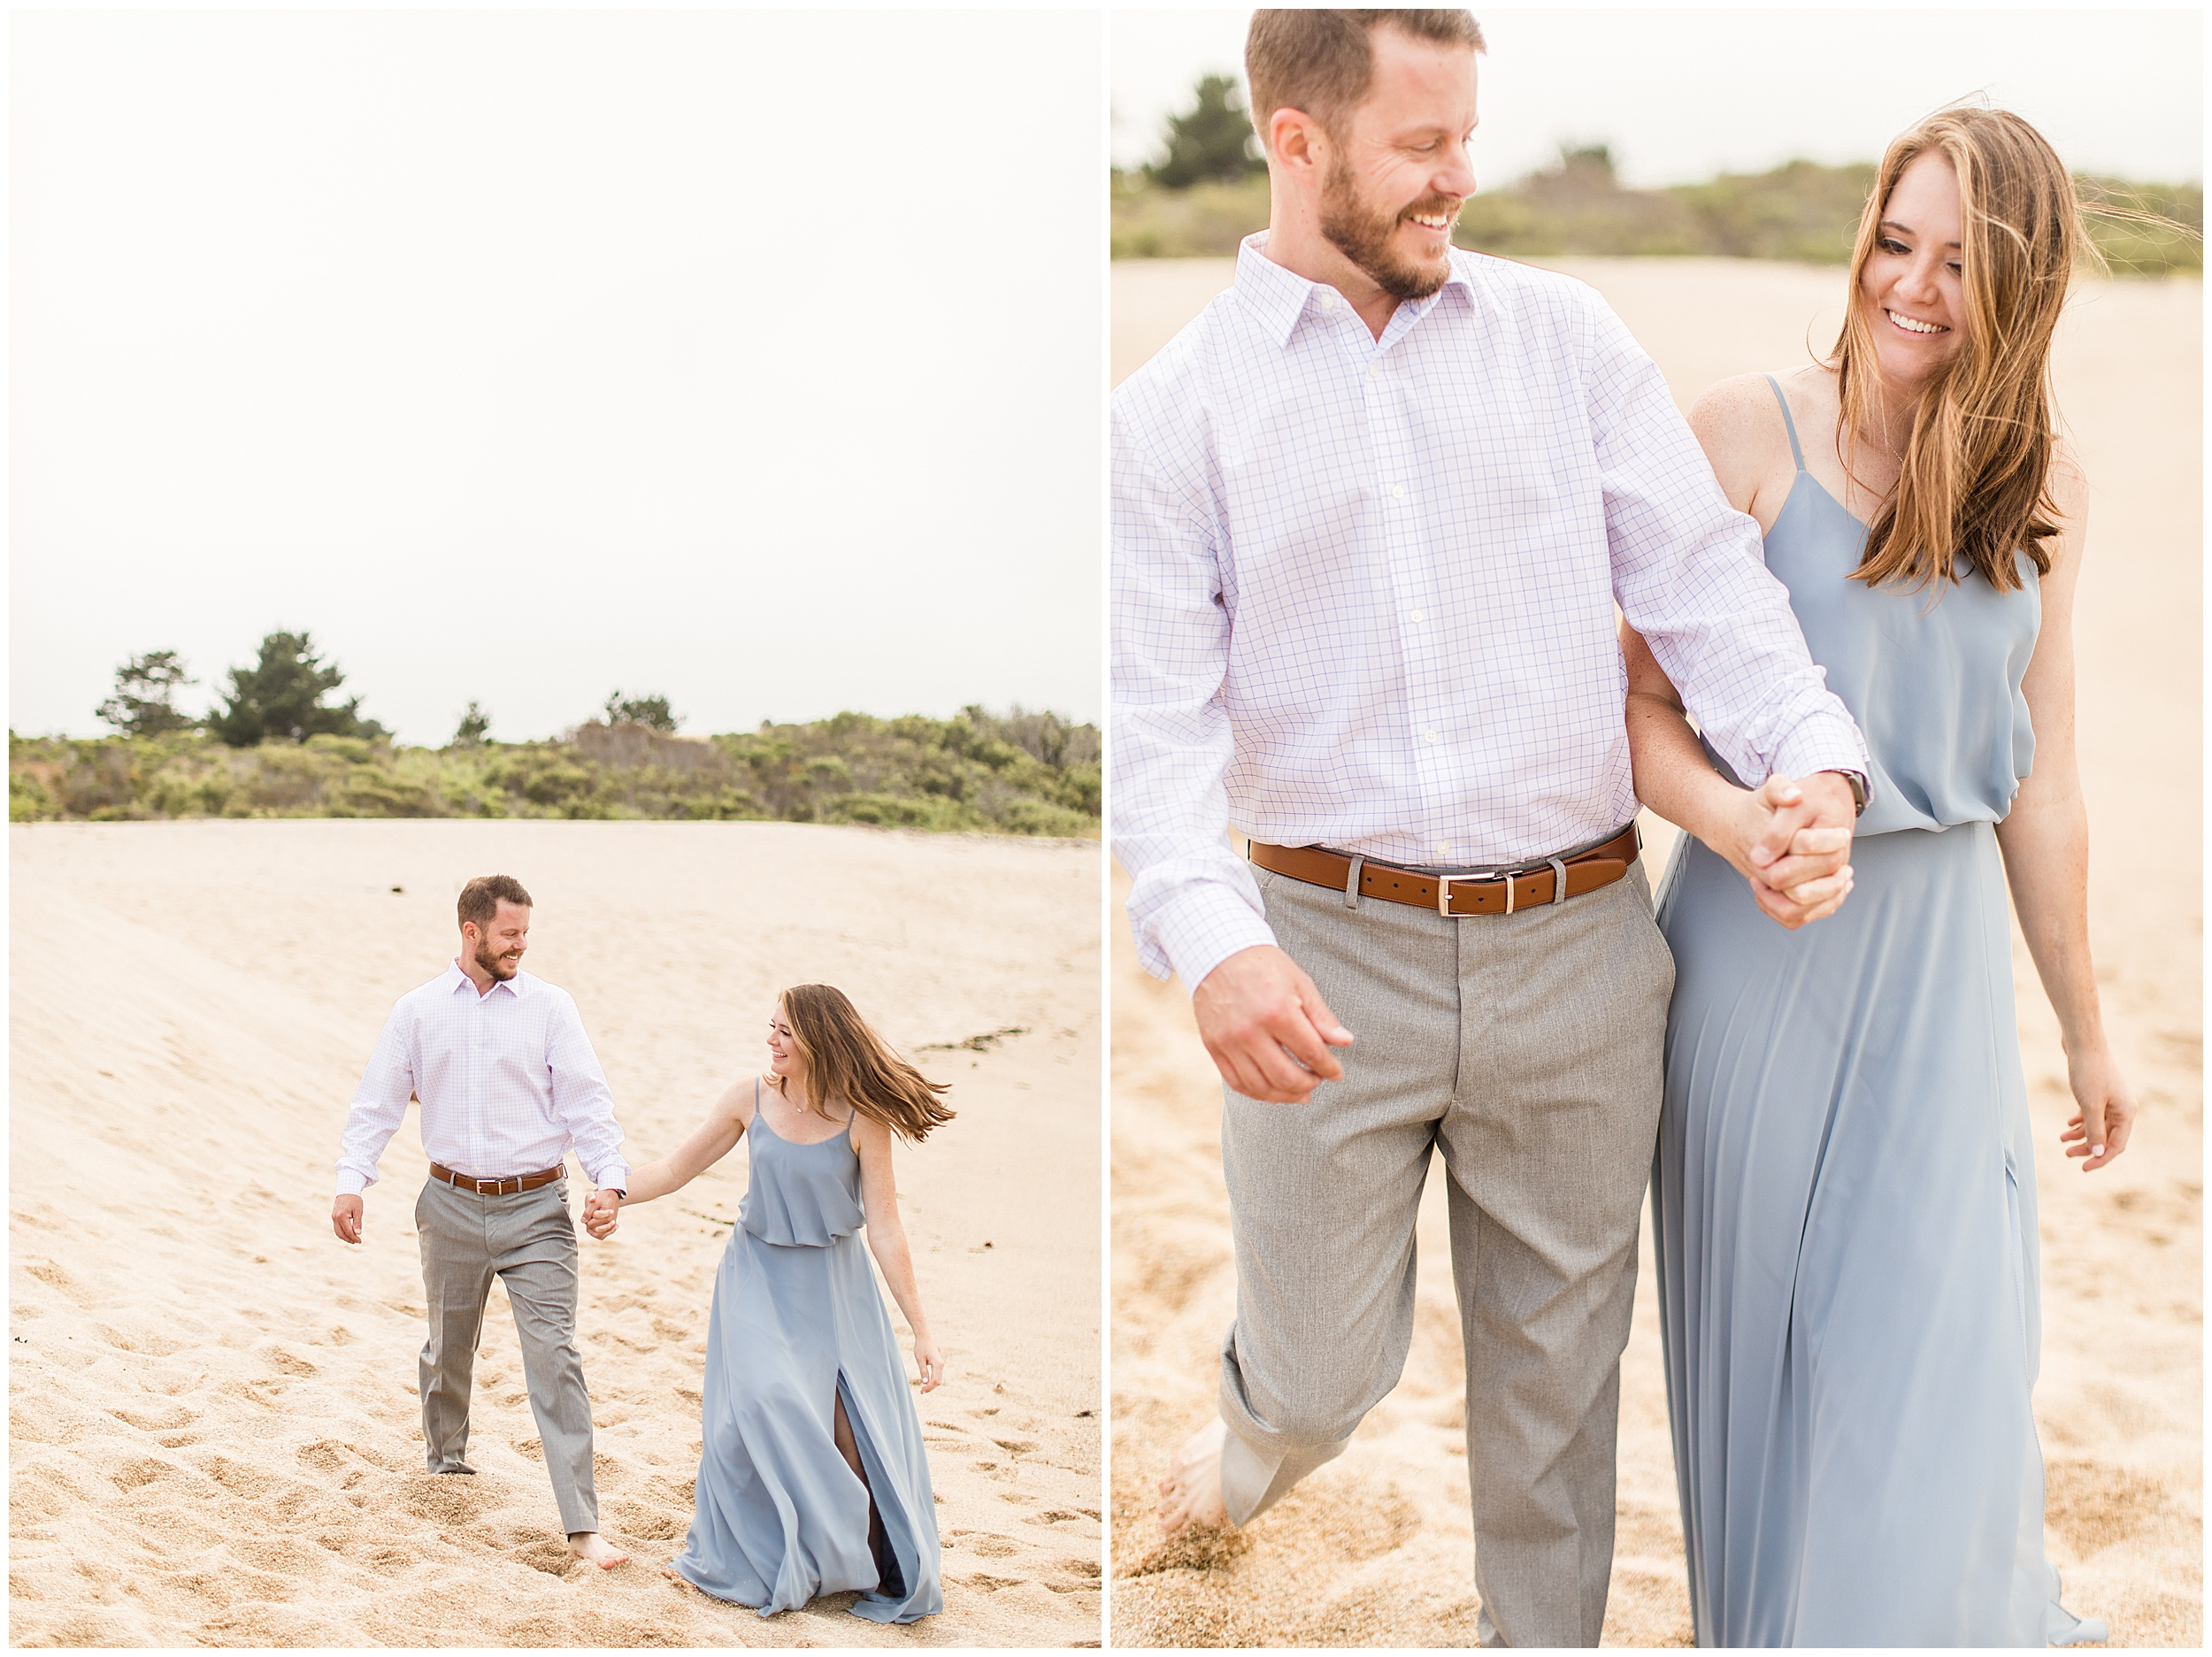 2019 carmel by the sea surprise proposal engagement session wedding photographer angela sue photography_0020.jpg